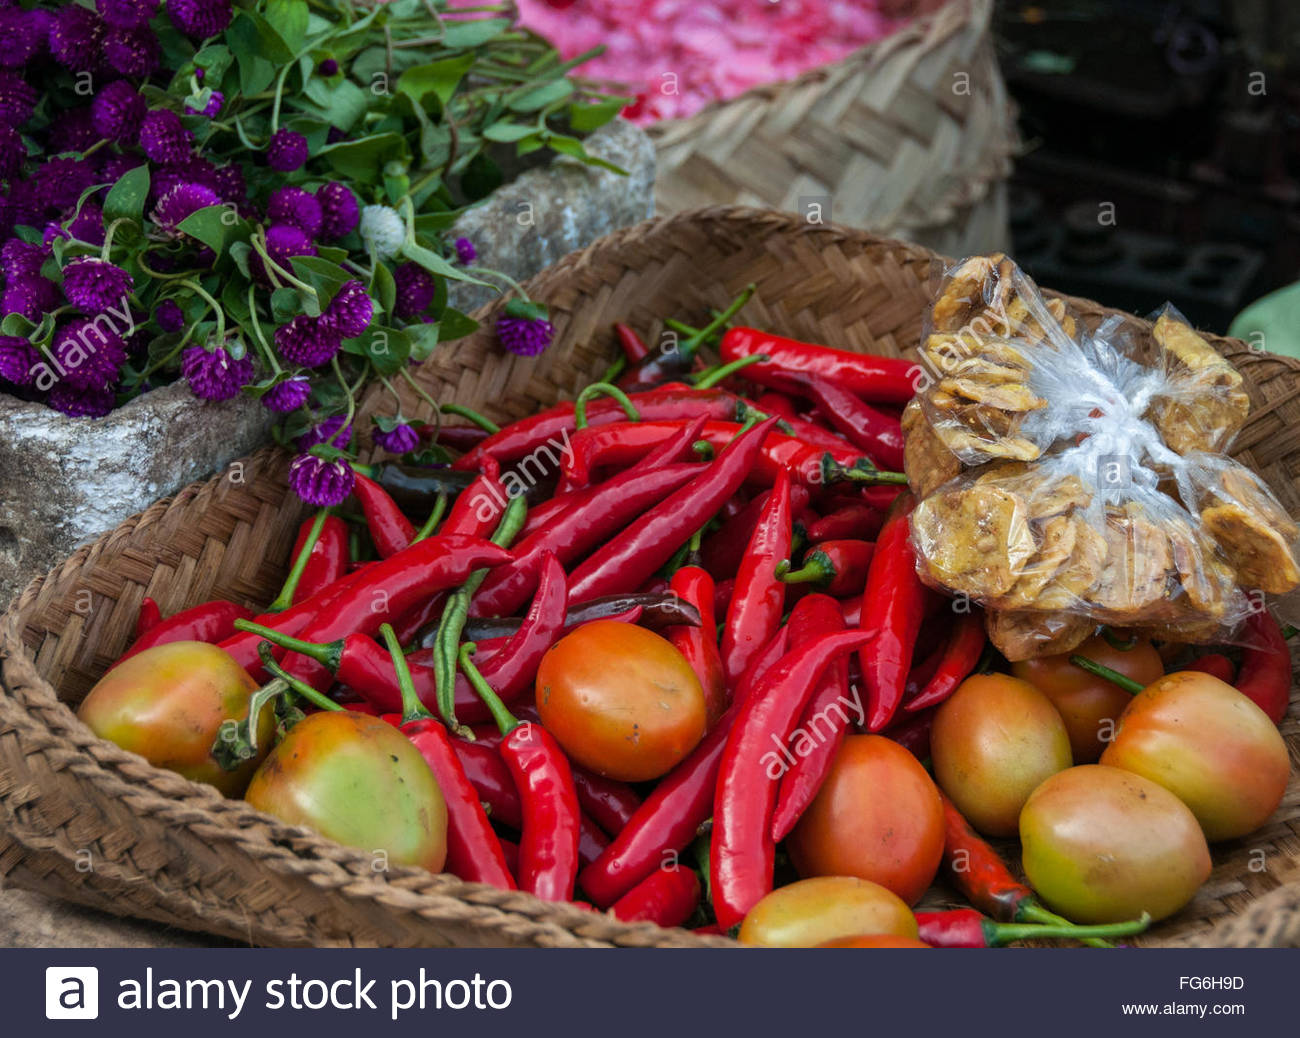 A basket of red chilies and tomatoes next to flowers at the produce market in Ubud, Bali - Stock Image